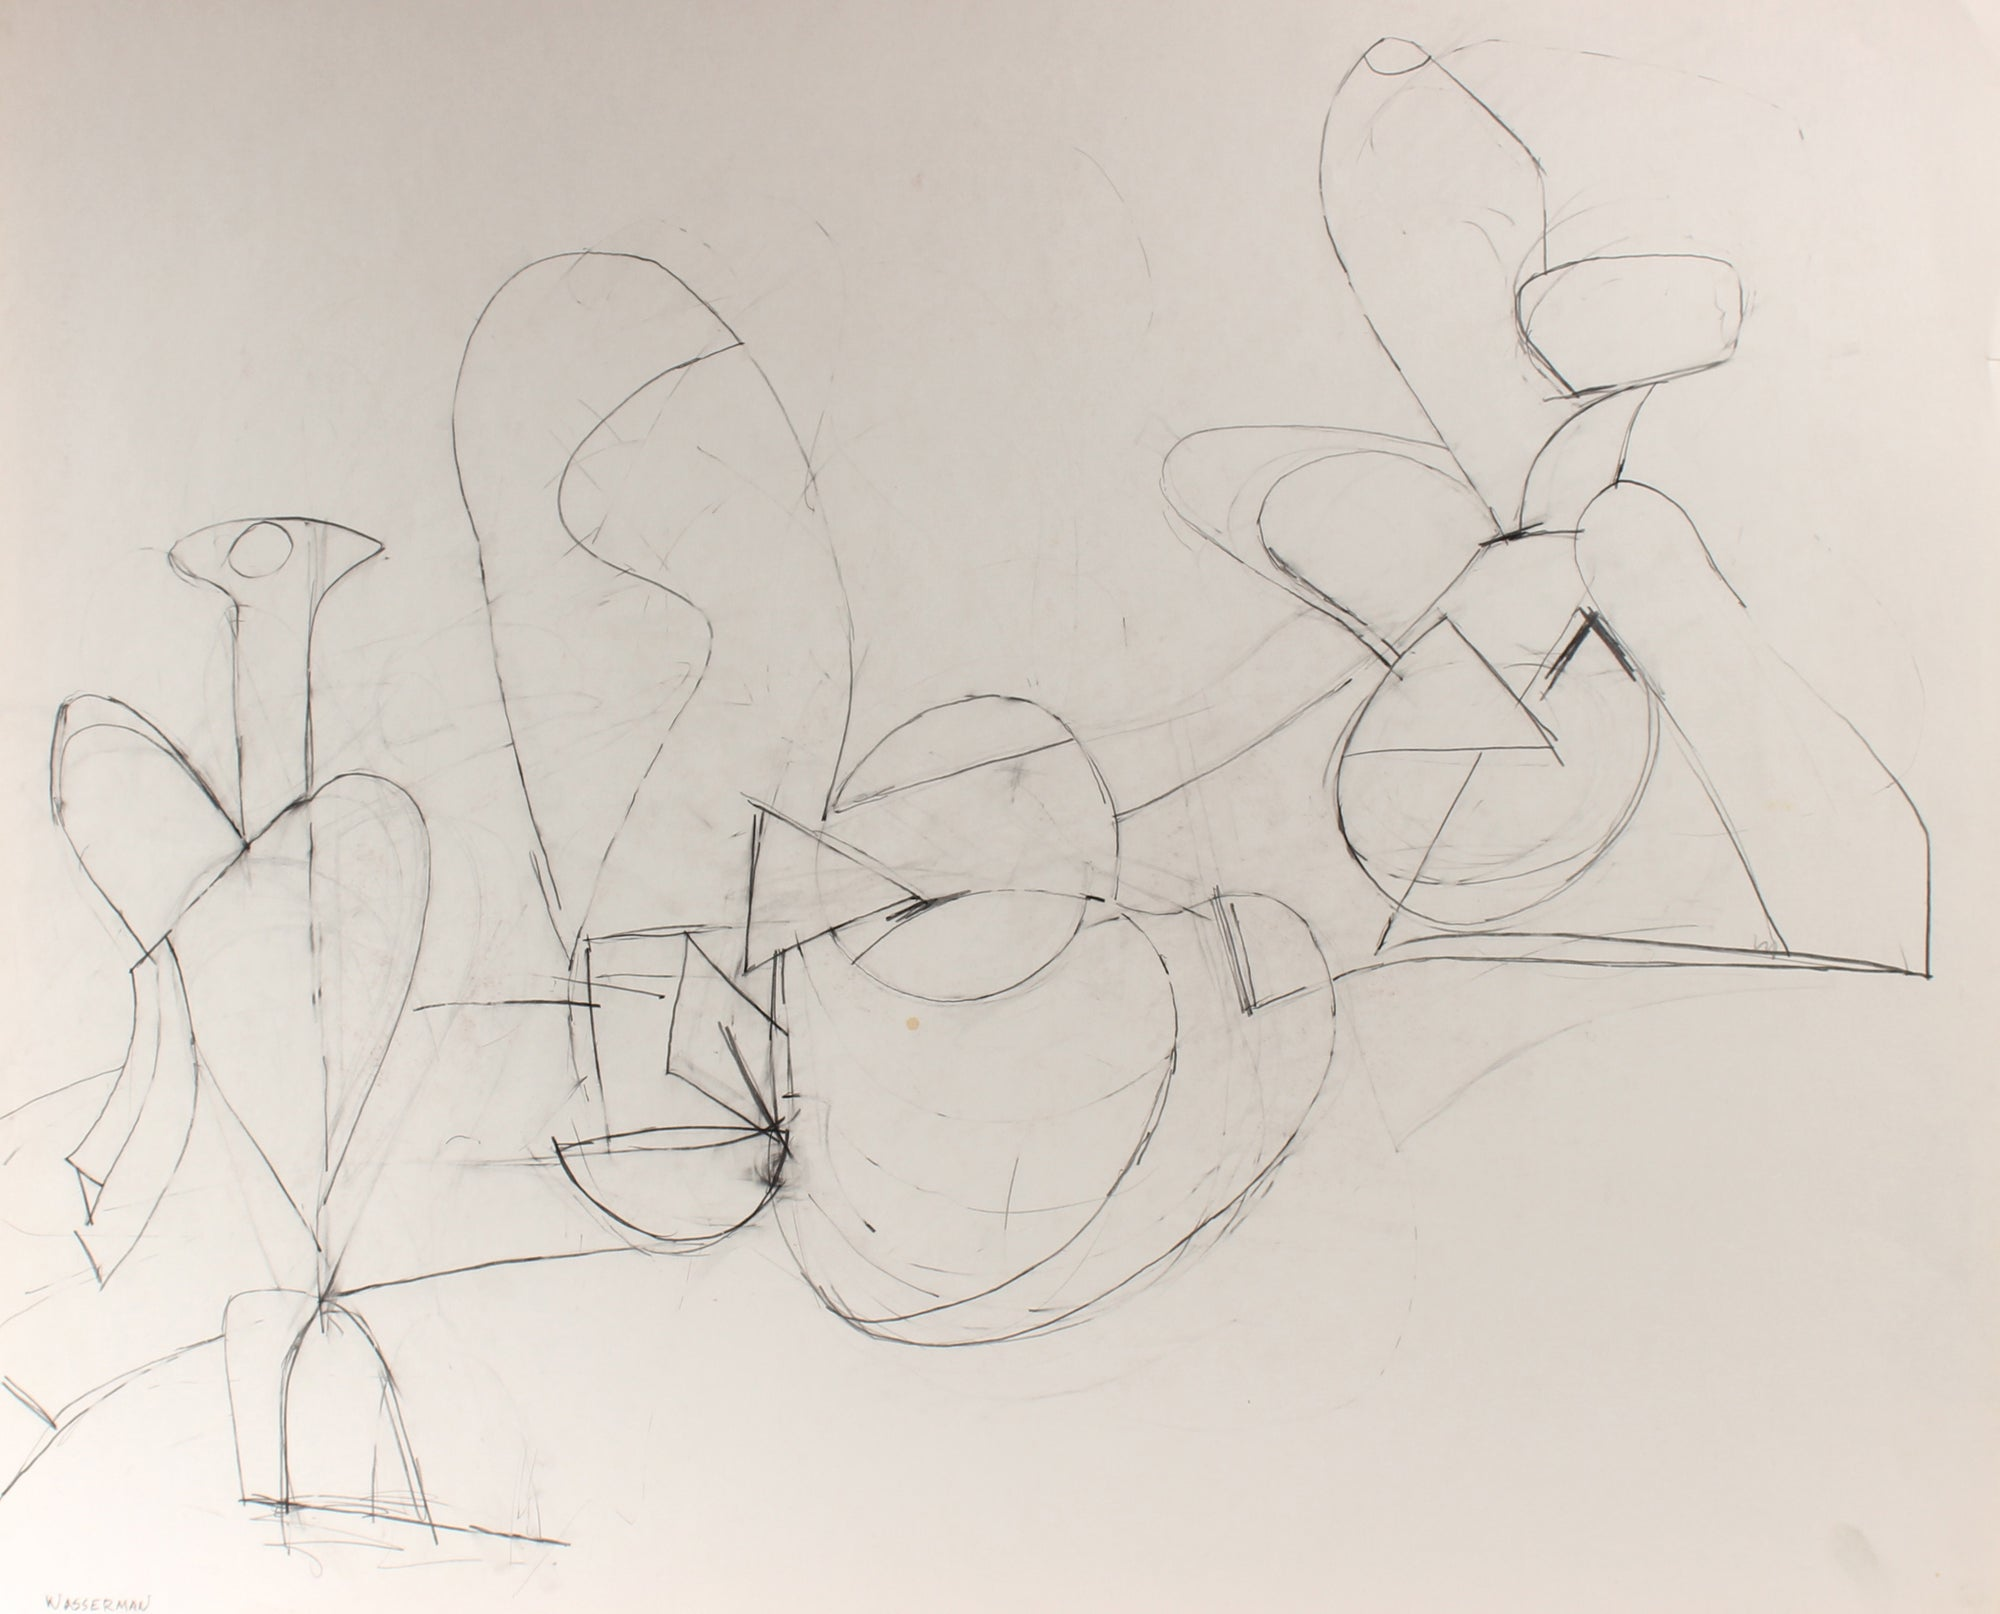 Minimalist Abstracted Figures<br>1998 Graphite<br><br>#88255